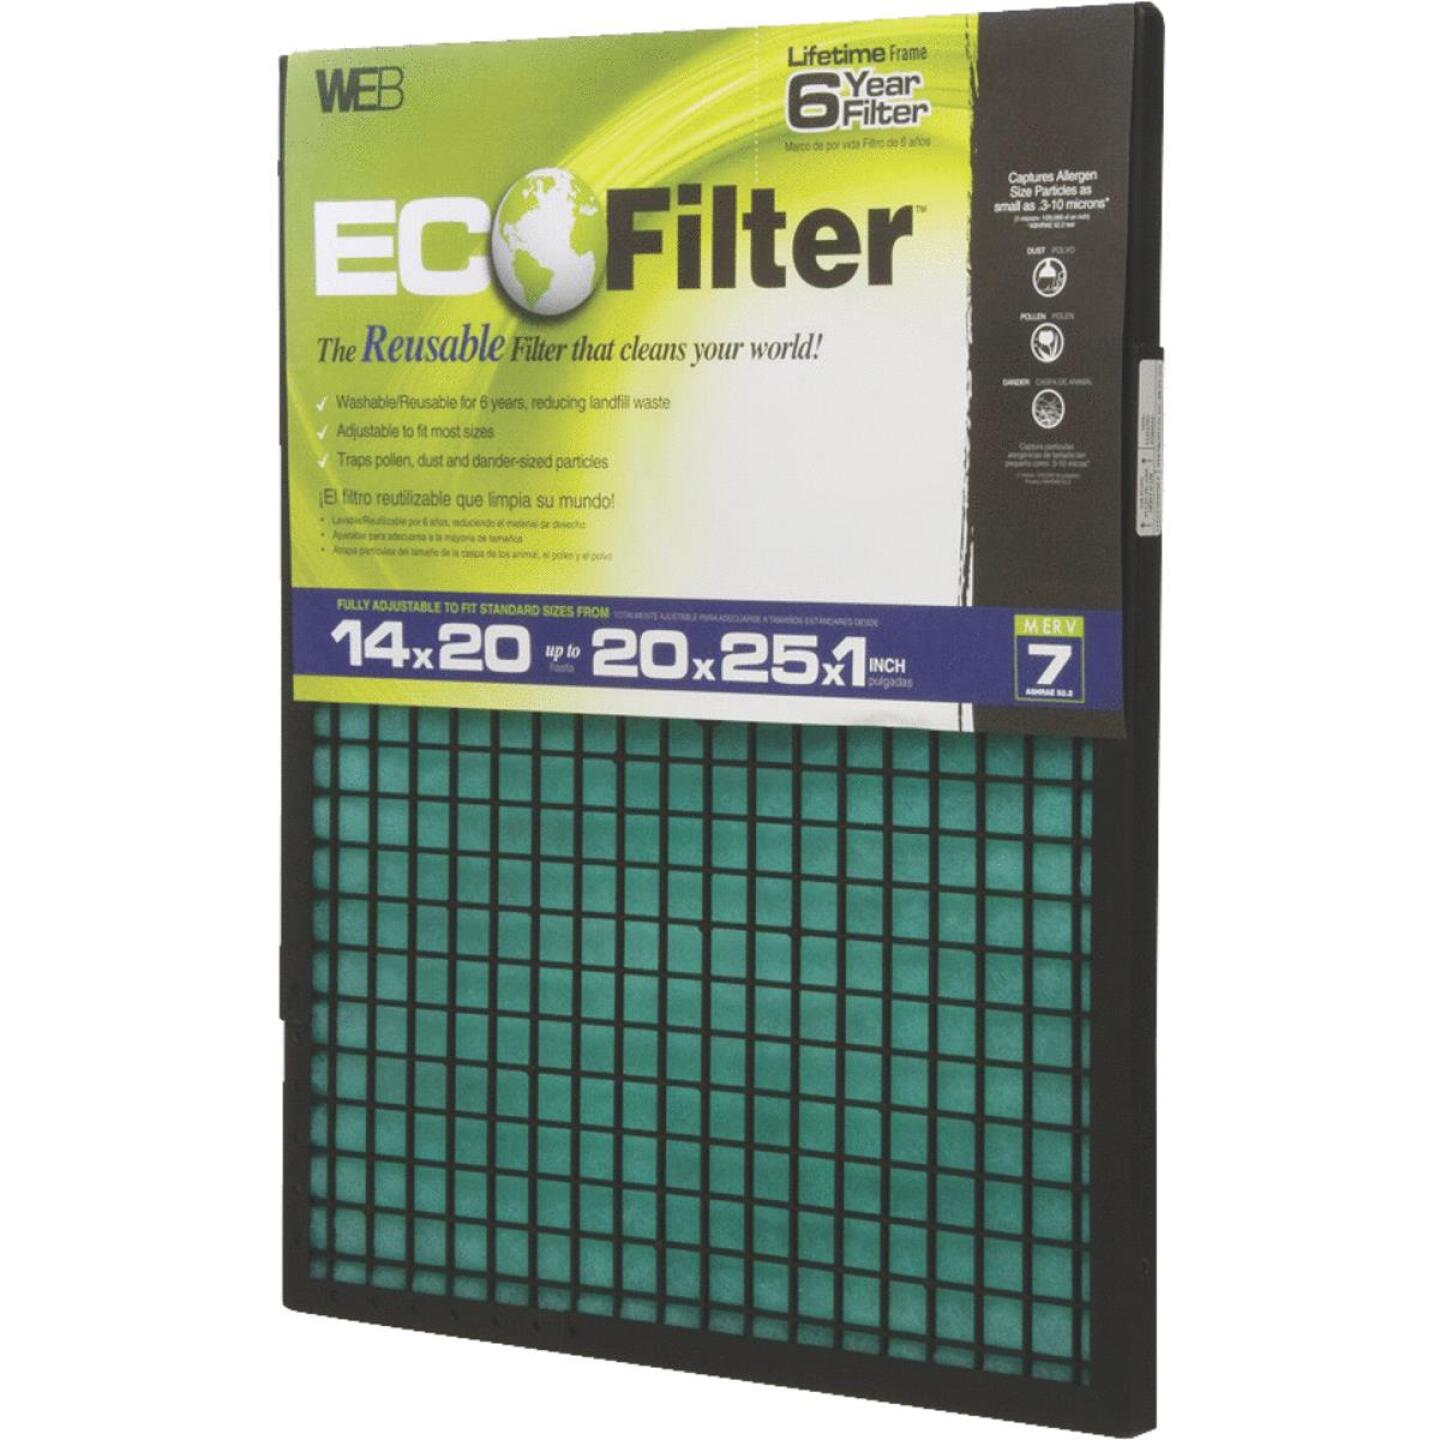 Web EcoFilter 14 In. x 20 In. x 1 In. to 20 In. x 25 In. x 1 In. Adjustable MERV 7 Furnace Filter Image 1